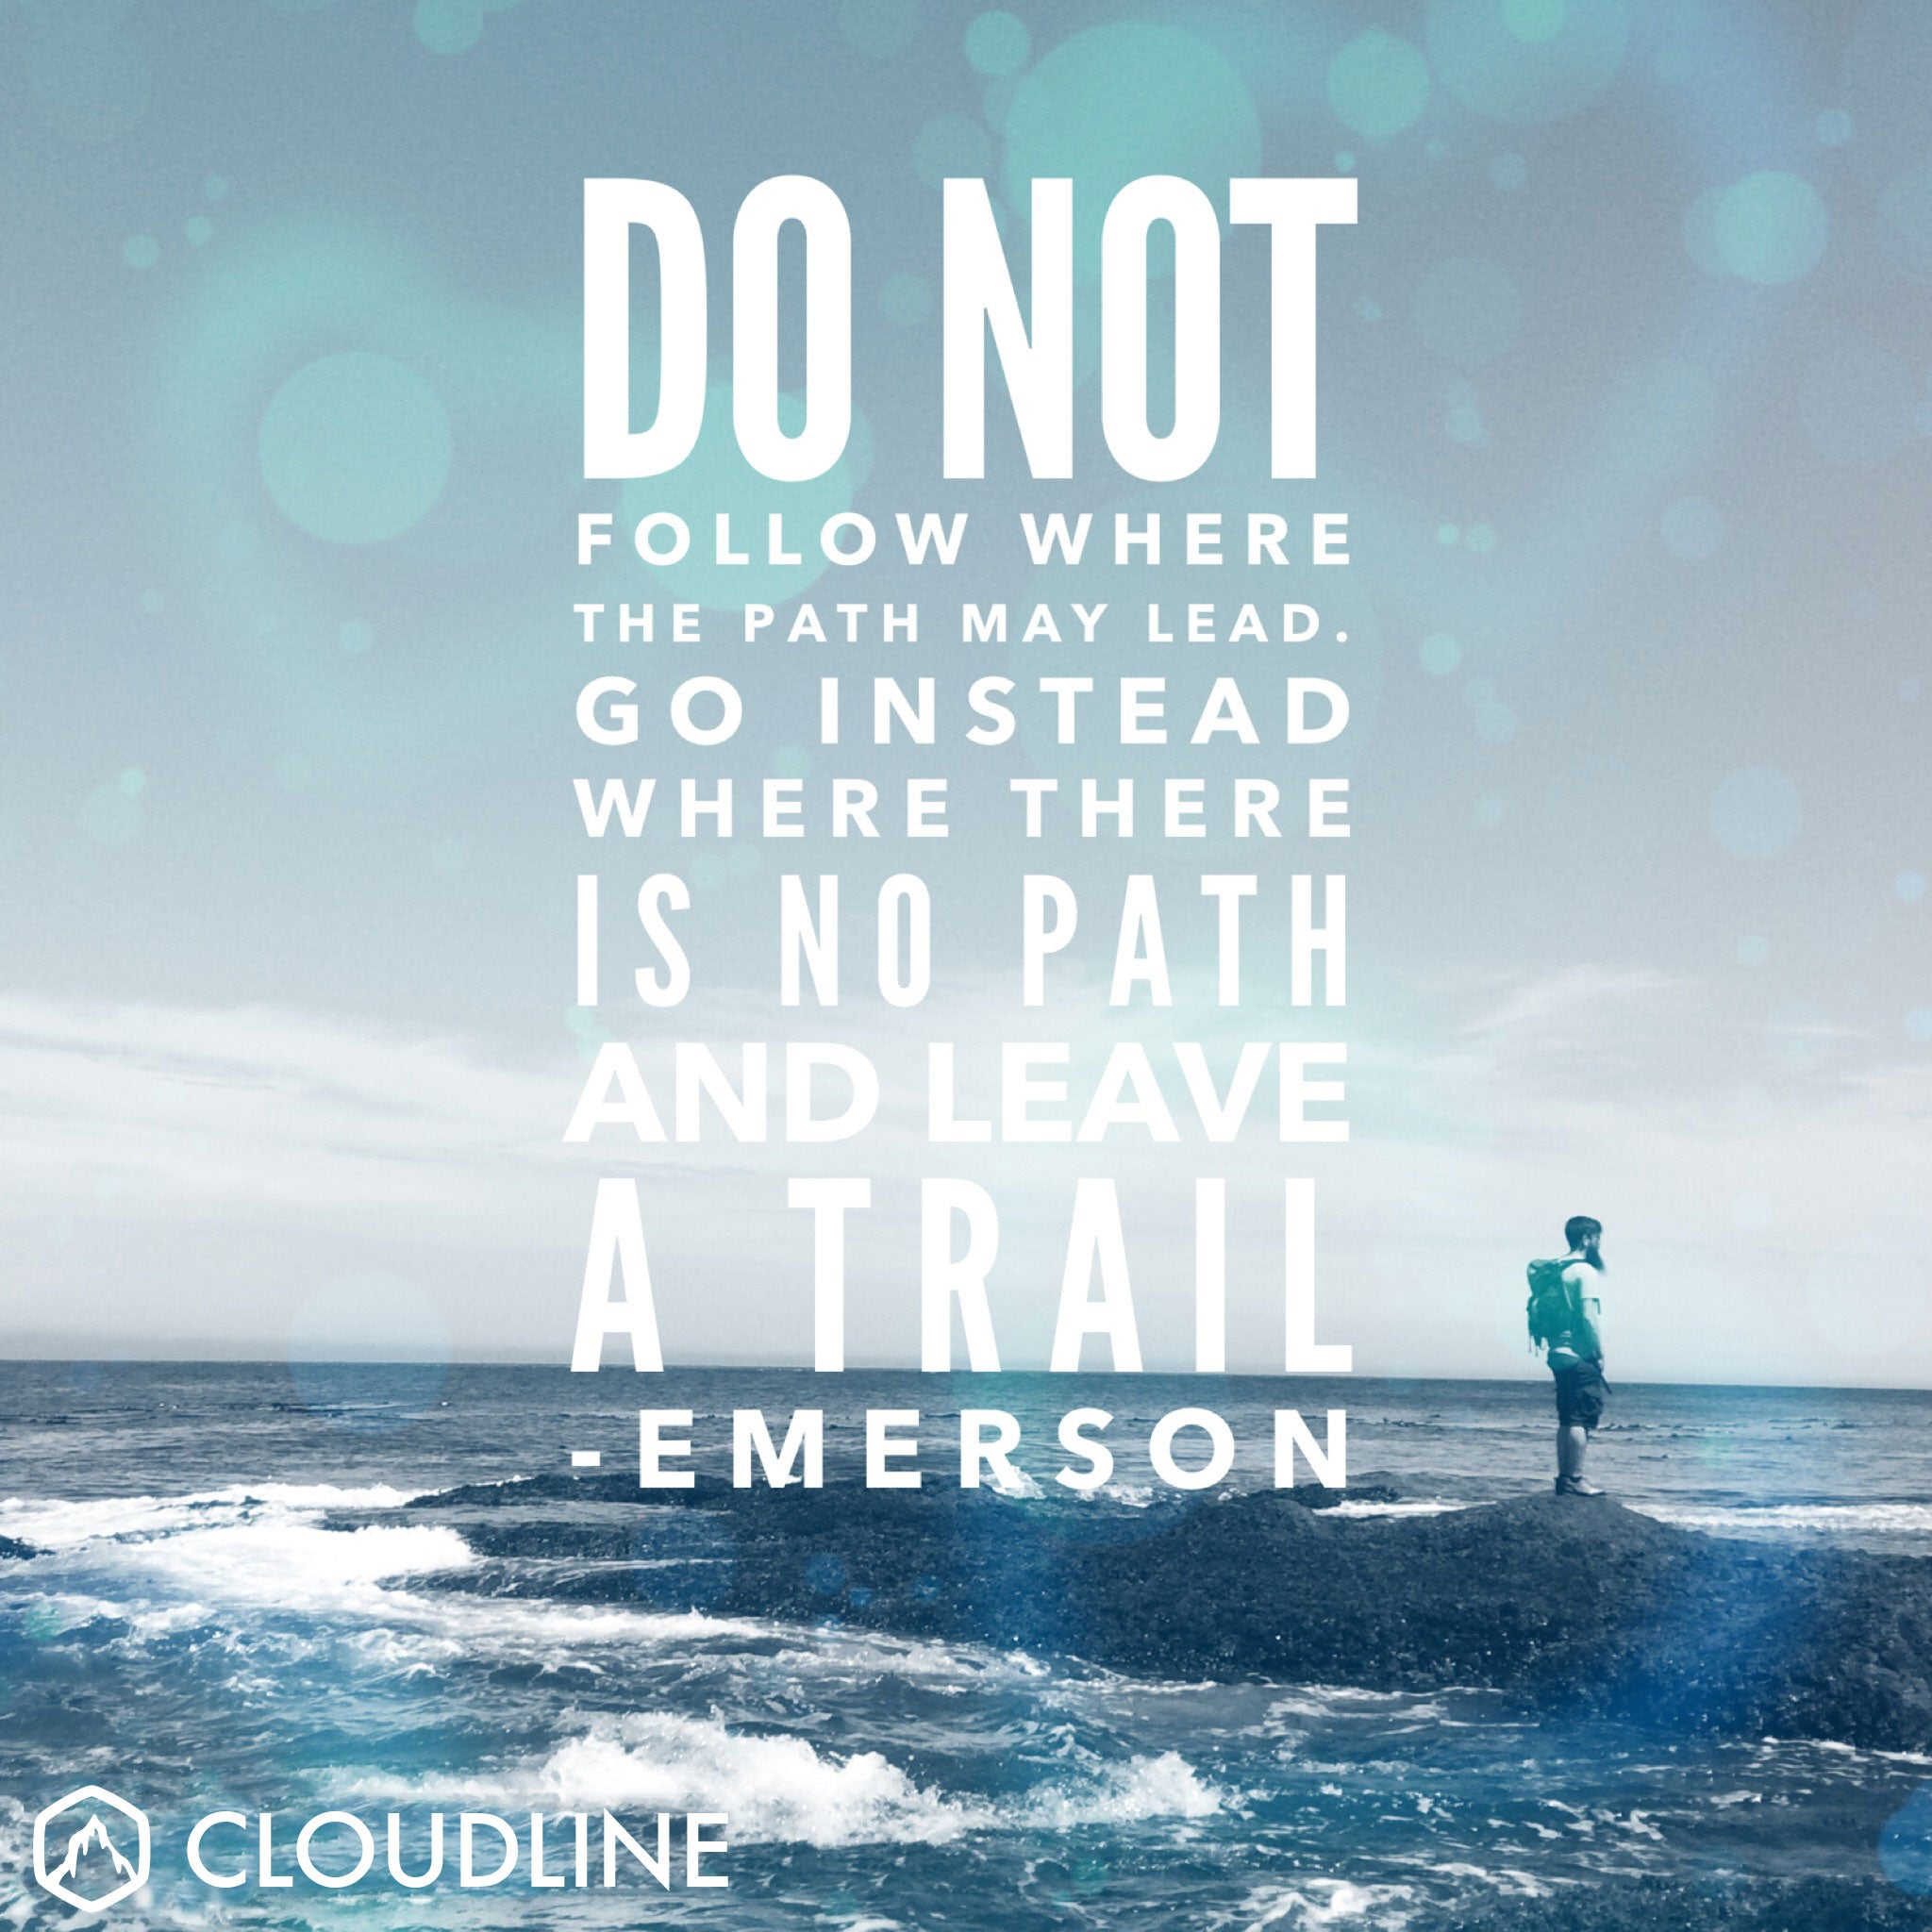 Get Inspired to Hike More with These Outdoor Quotes - Emerson